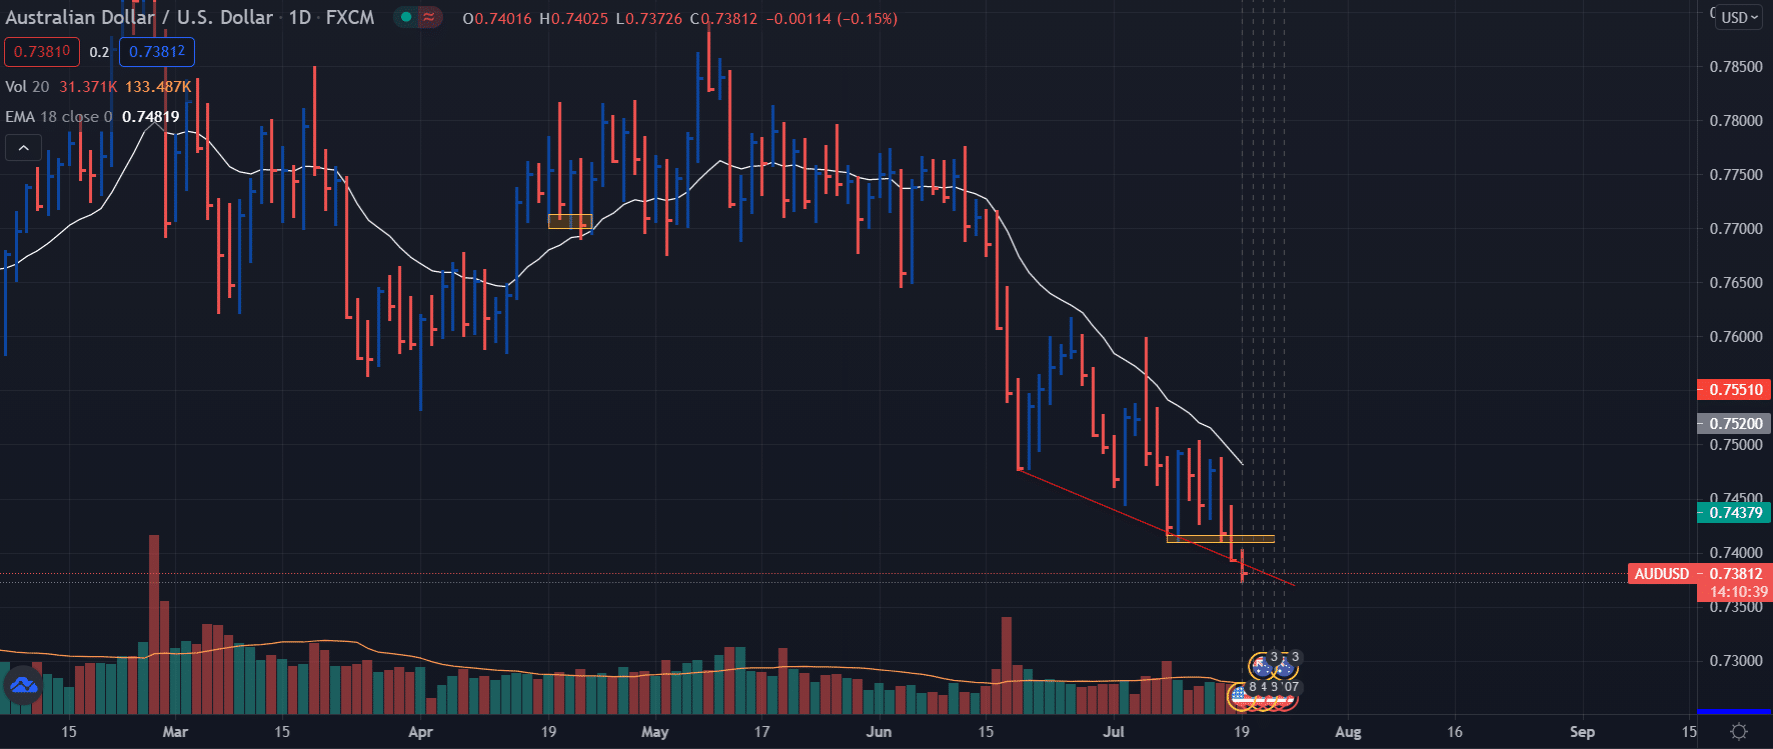 GBP/USD price on daily chart